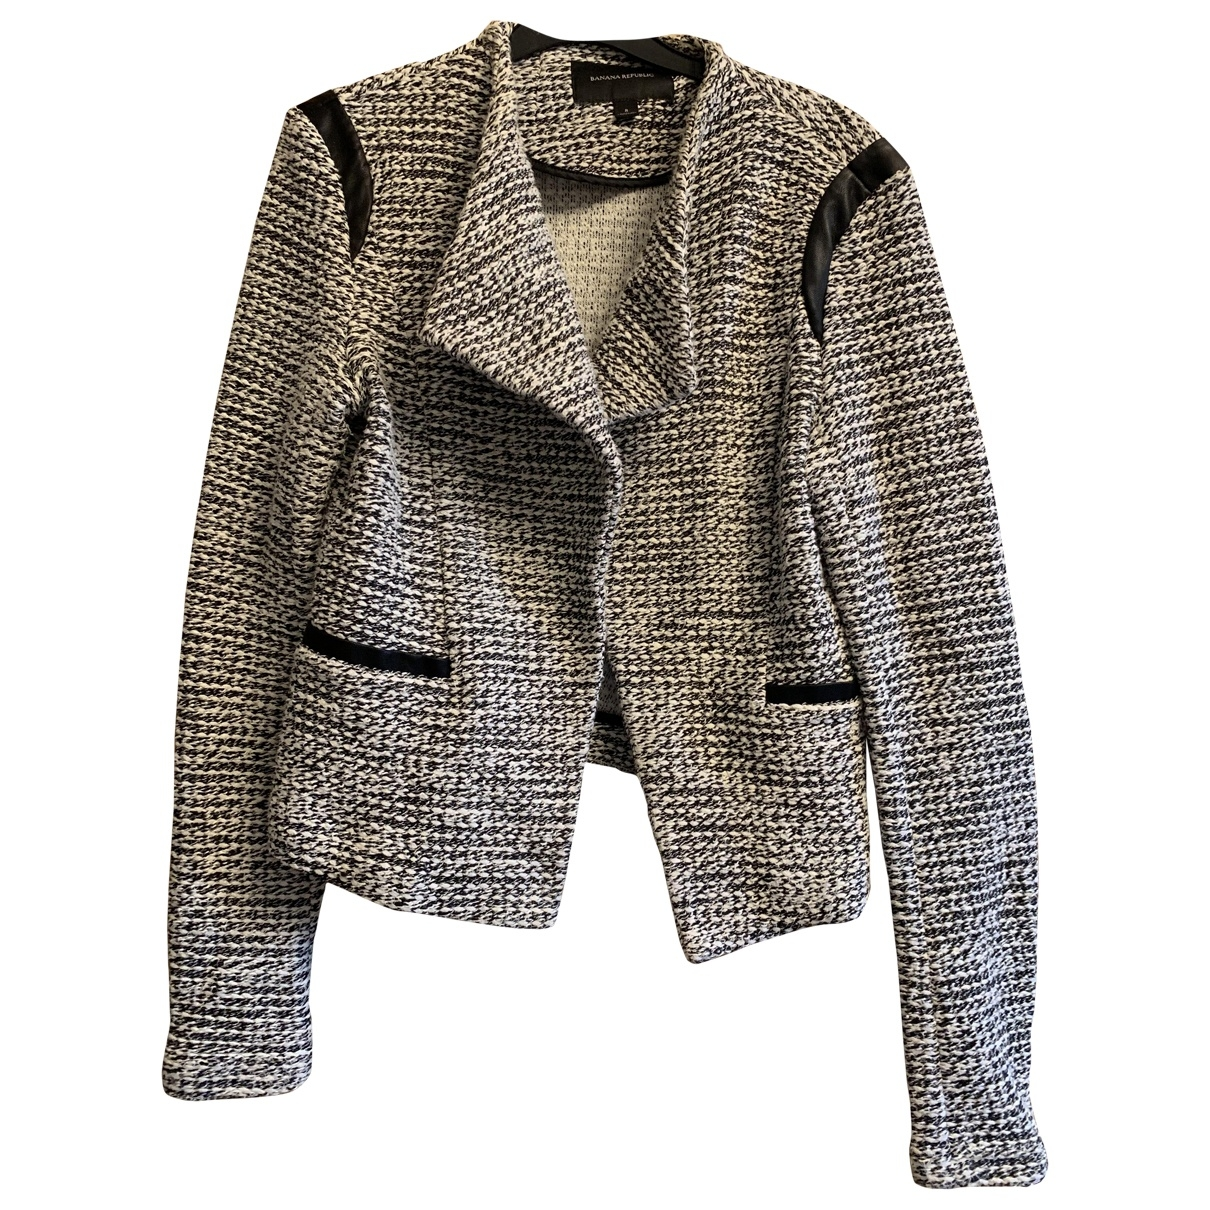 Banana Republic \N Grey Tweed jacket for Women 8 UK